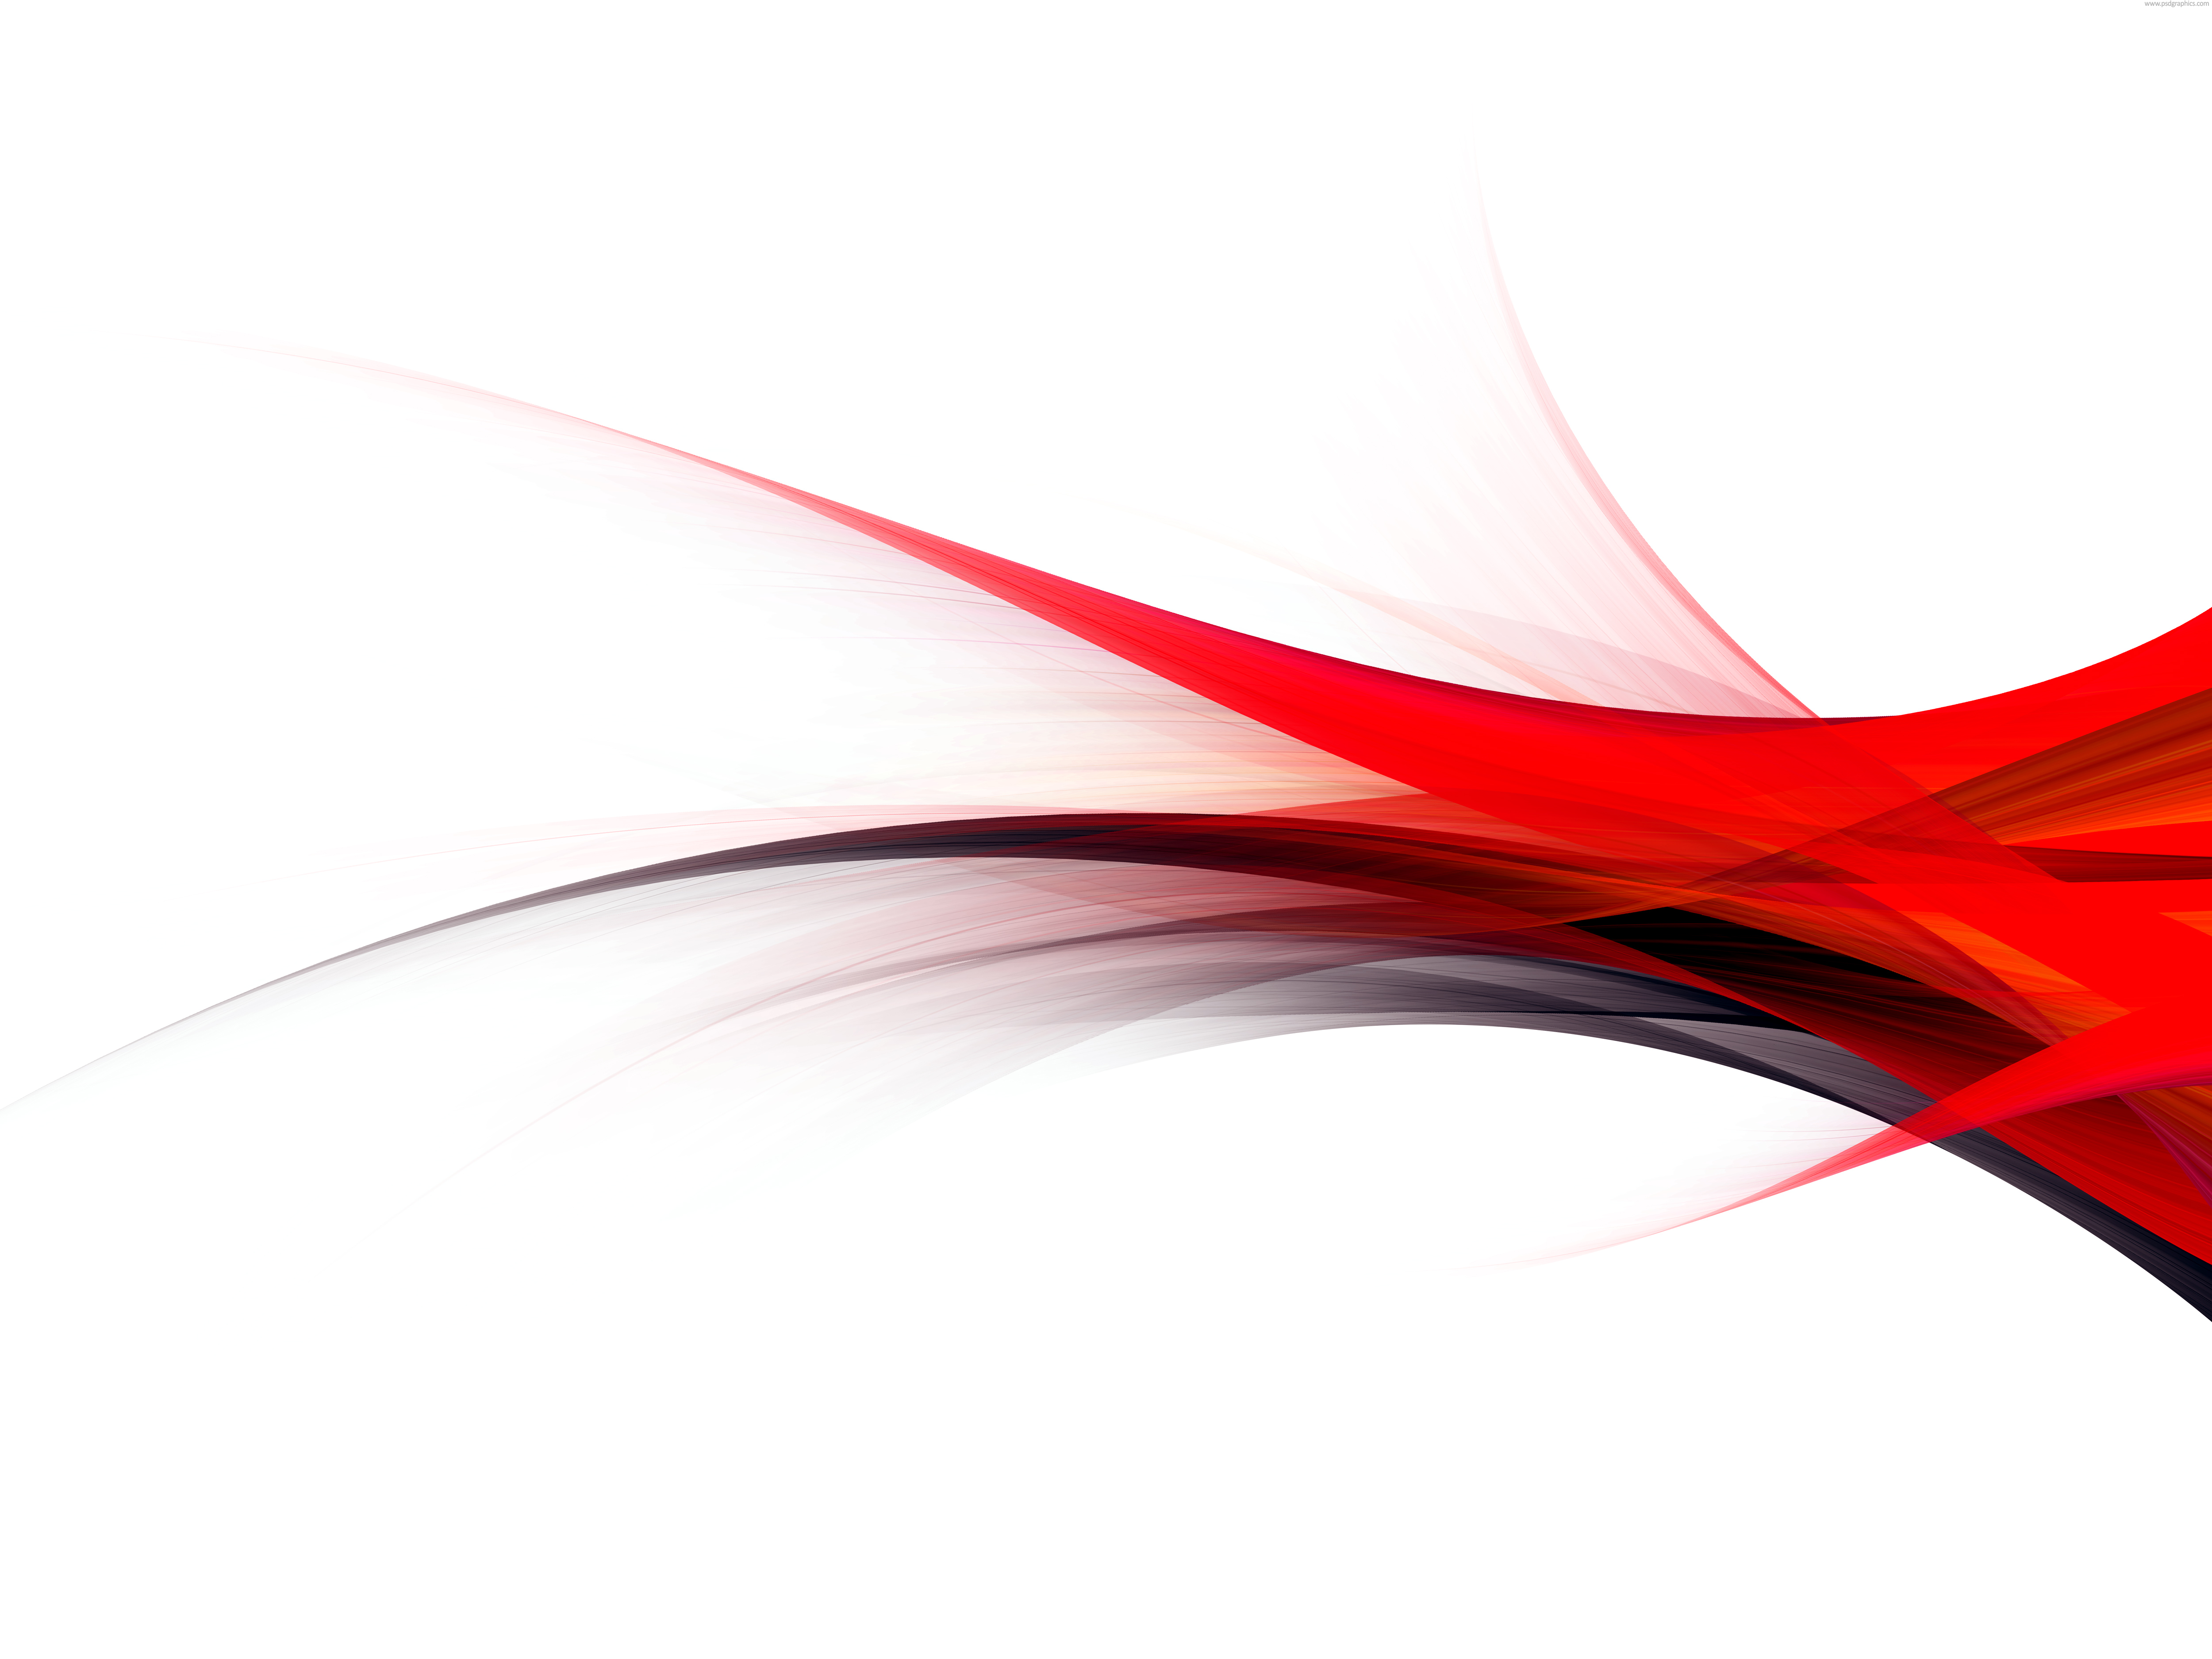 Red graphics graphic transparent Red and black flow background | PSDGraphics graphic transparent